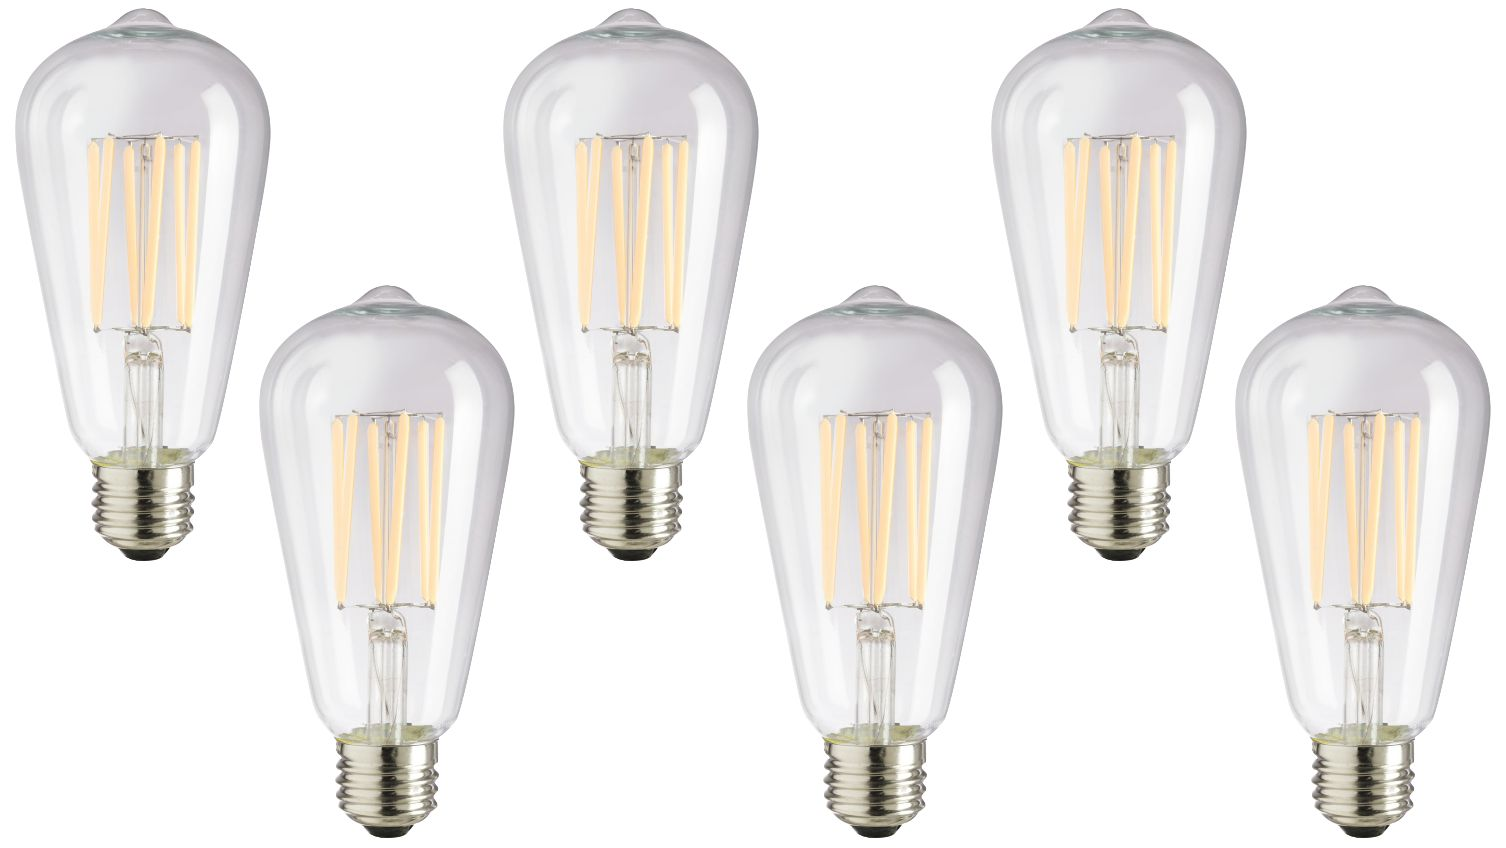 75w equivalent clear 8w led dimmable edison bulb 6pack